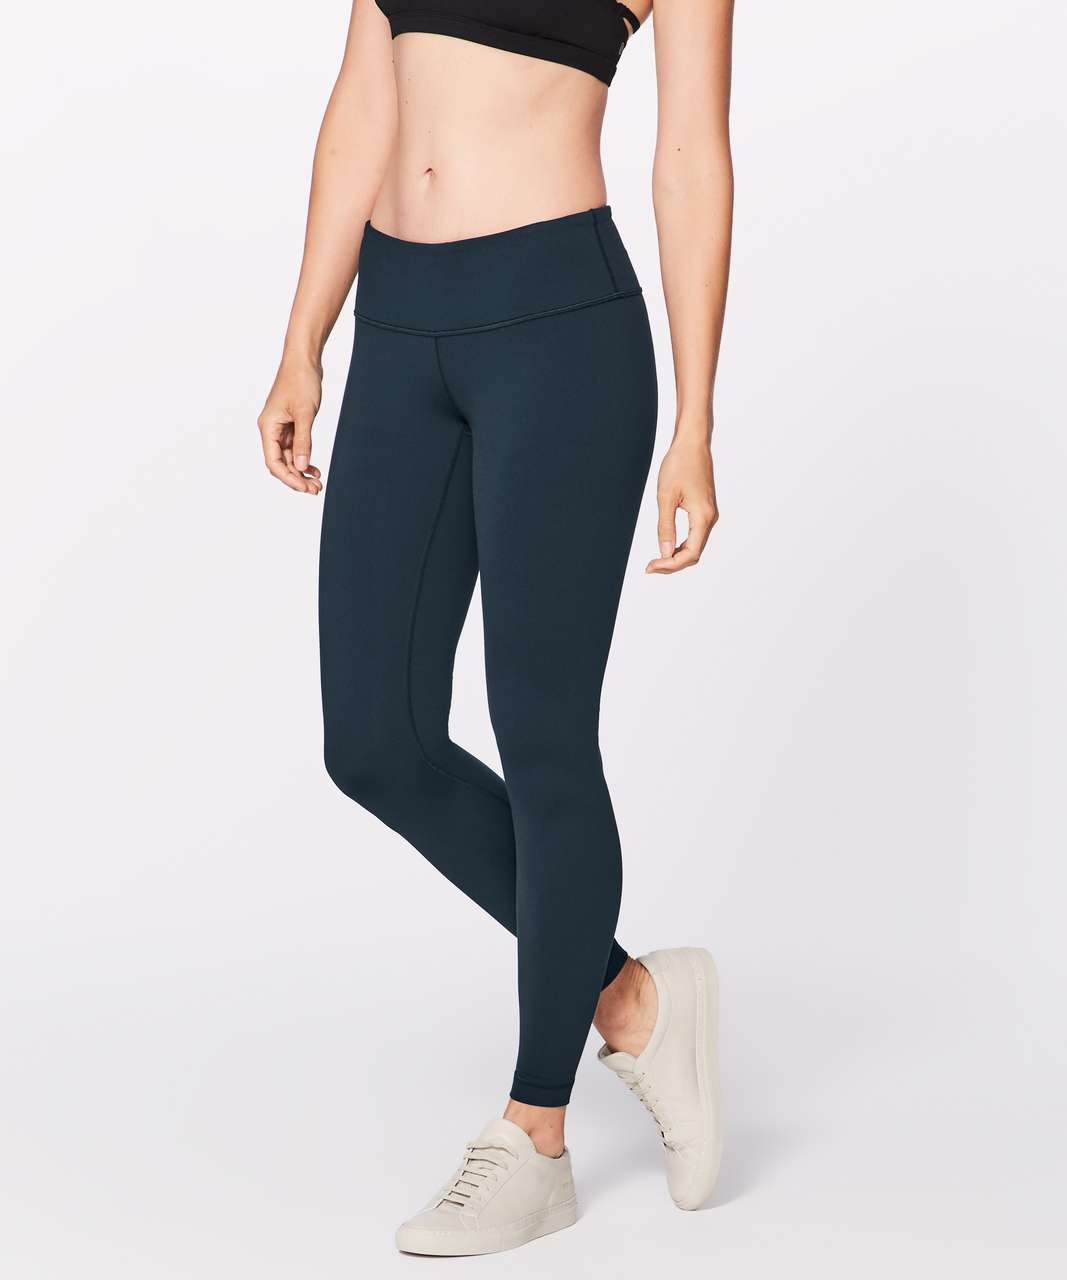 58ddbeeb31a80 Lululemon Wunder Under Low-Rise Tight *Full-On Luon 28